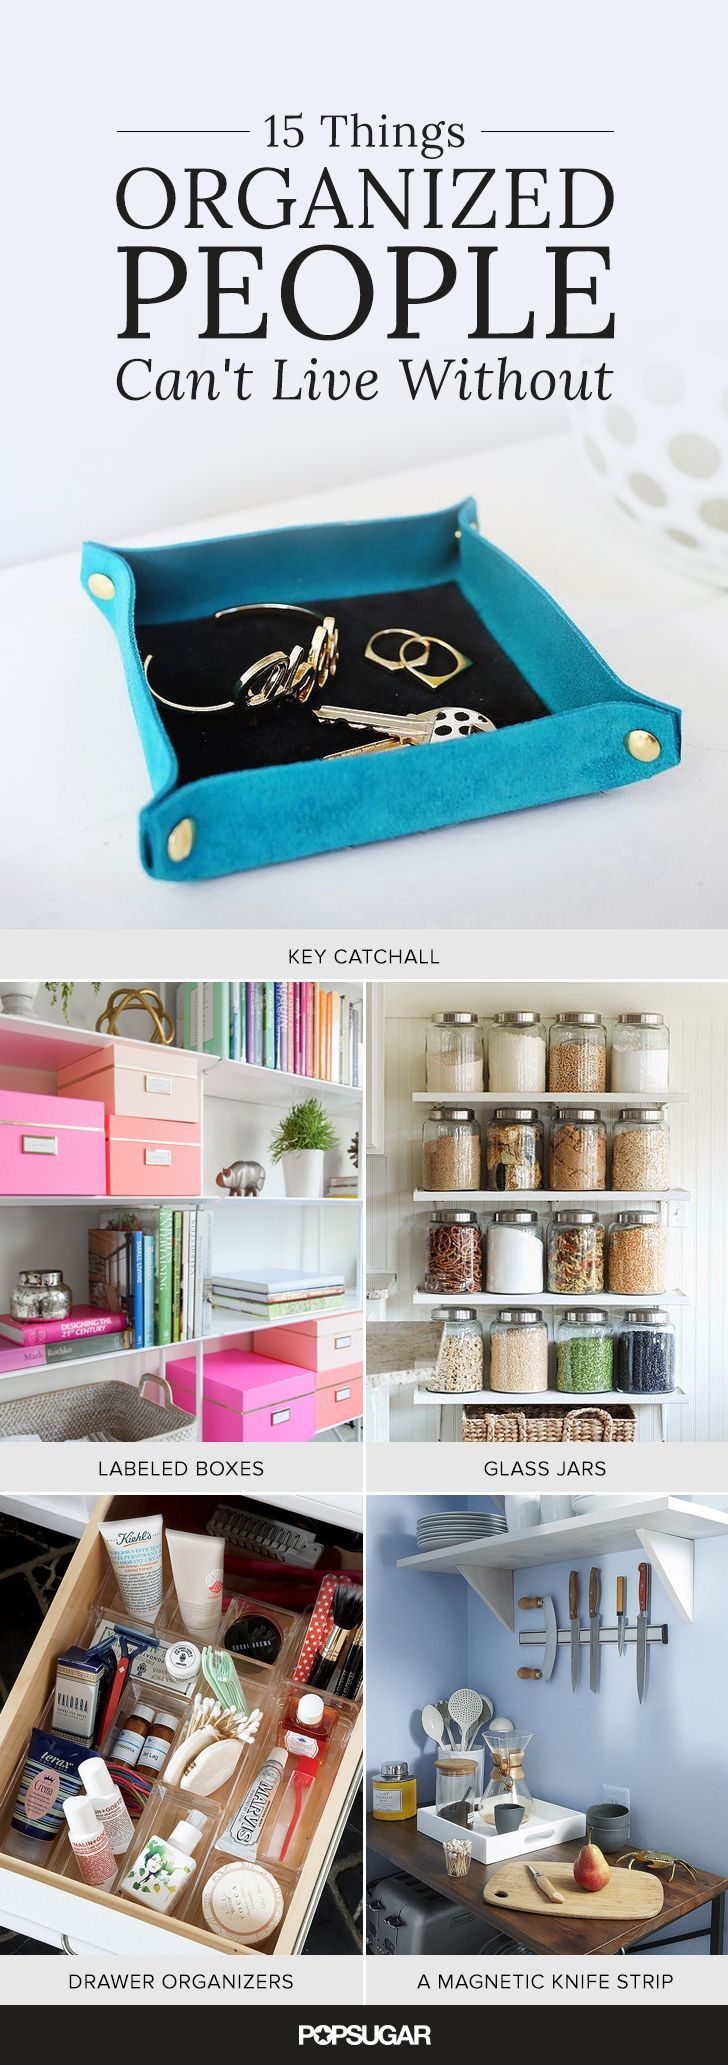 If searching for your keys is a part of your morning ritual, it's time to break the cycle. These 15 clutter-busting essentials will make your days feel longer and less stressful.